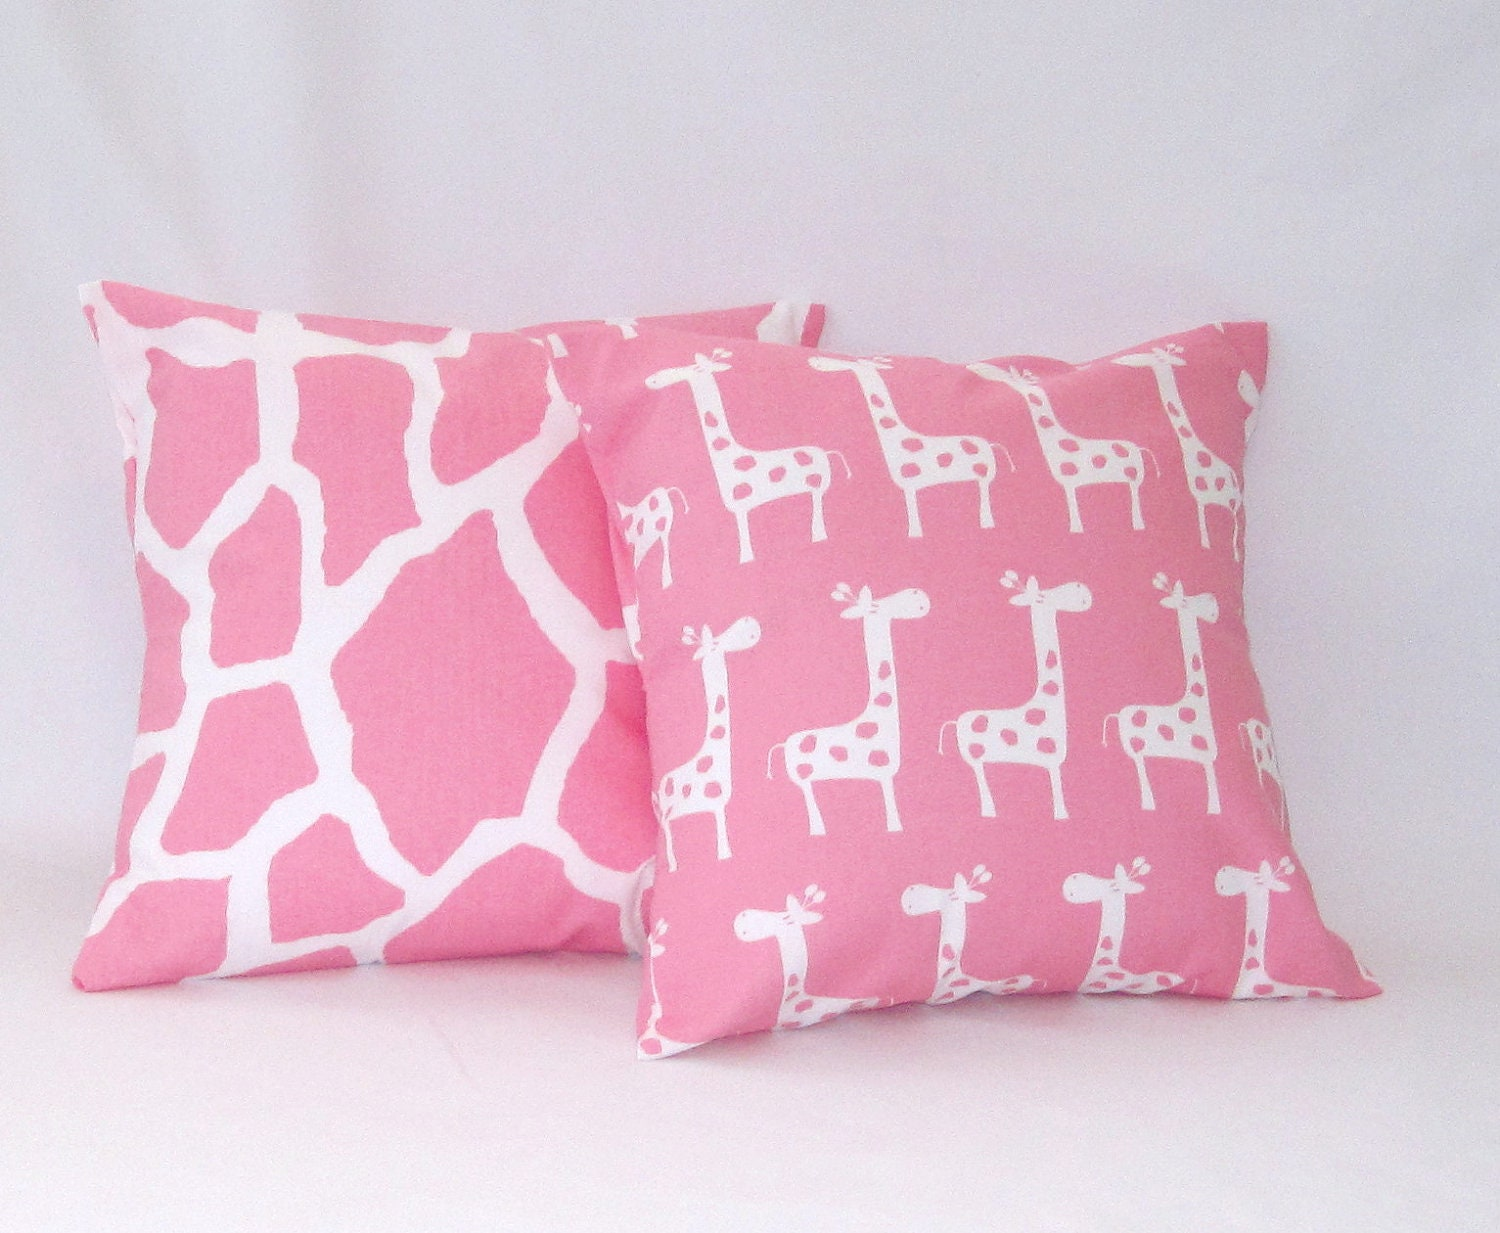 Decorative Pillows For Crib : Pillow CoversPillows Baby Nursery Baby Girl Pink by PillowsByJanet